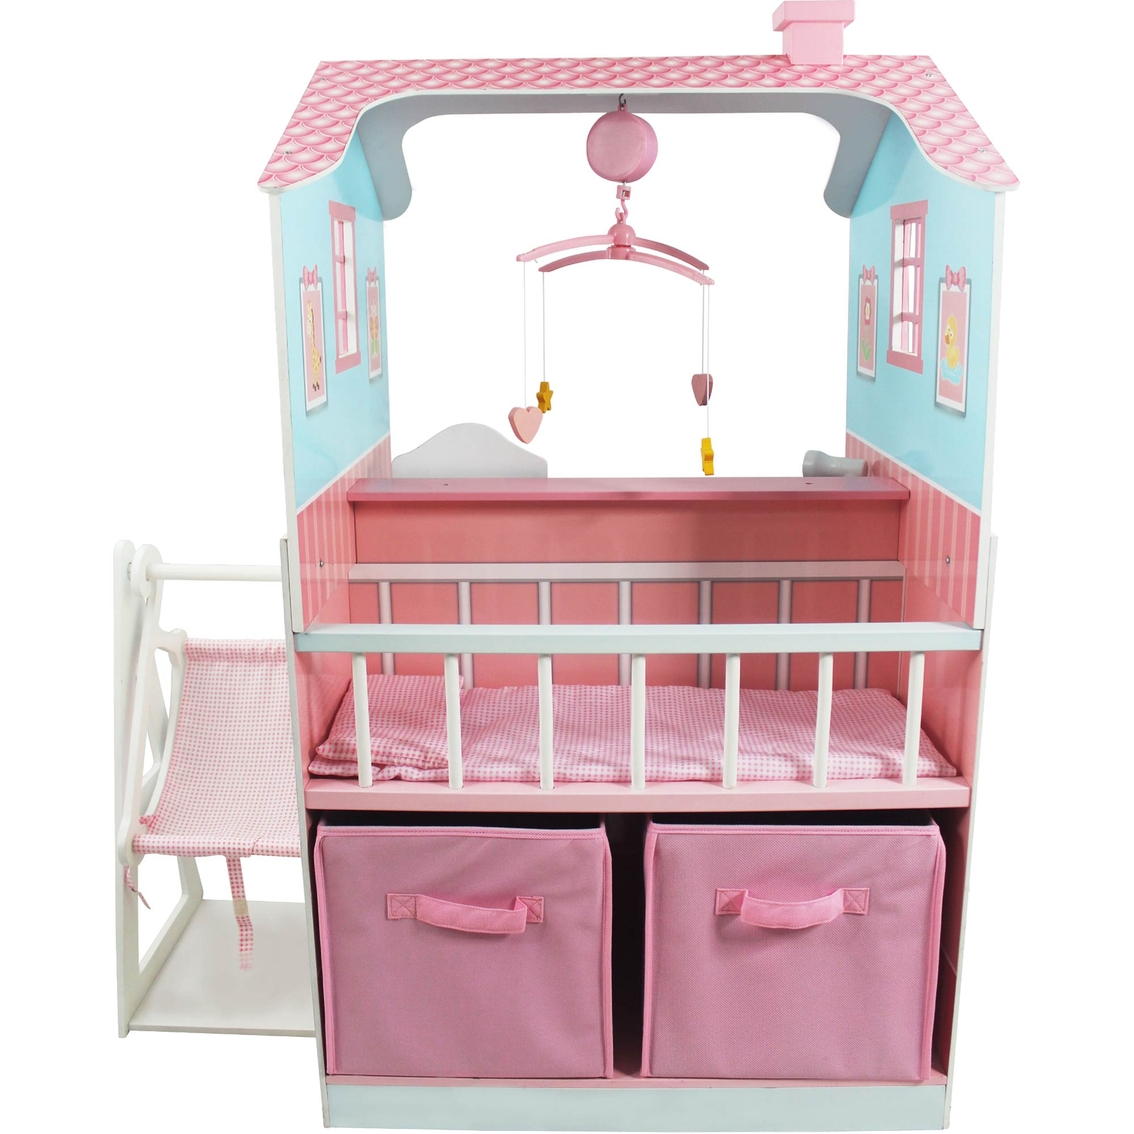 Teamson kids baby nursery play set doll playsets baby amp toys